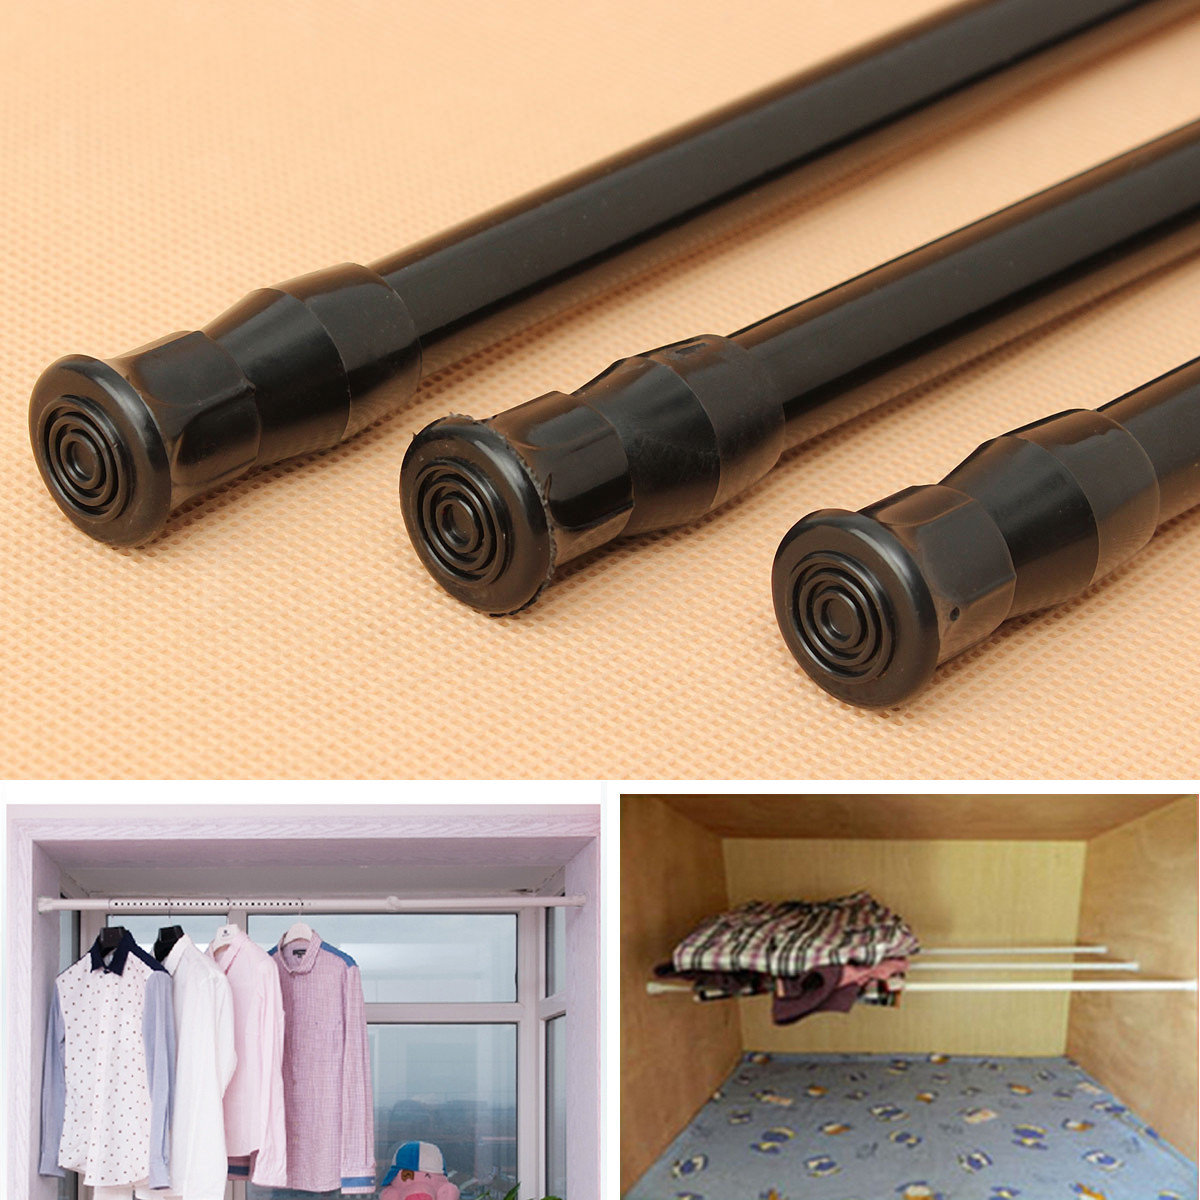 Extendable Shower Curtain Rod Extendable Adjustable Spring Tension Window Curtain Rod Pole Telescopic Pole Shower Curtain Rod